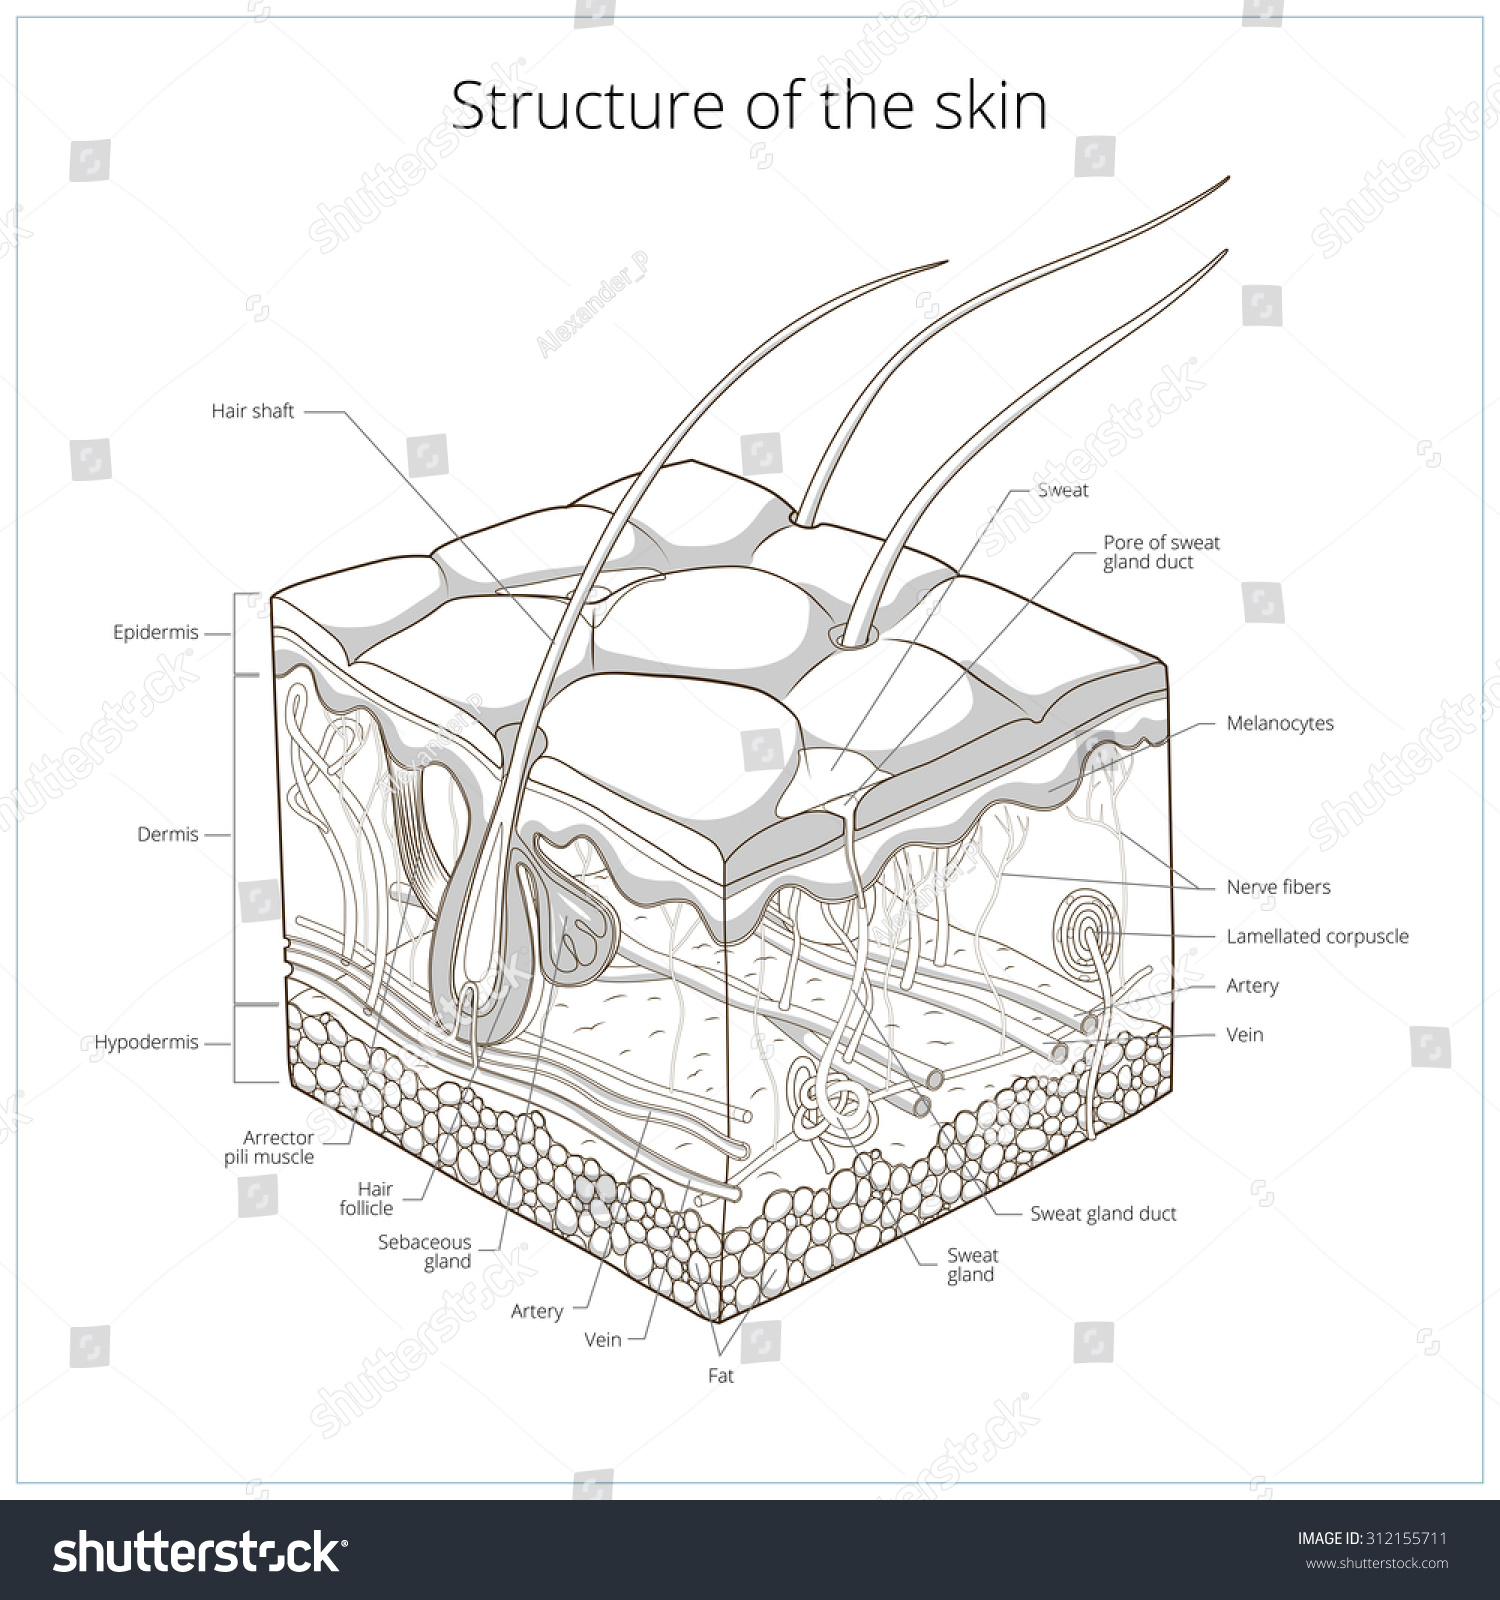 Skin Structure Diagram Animals - All Kind Of Wiring Diagrams •